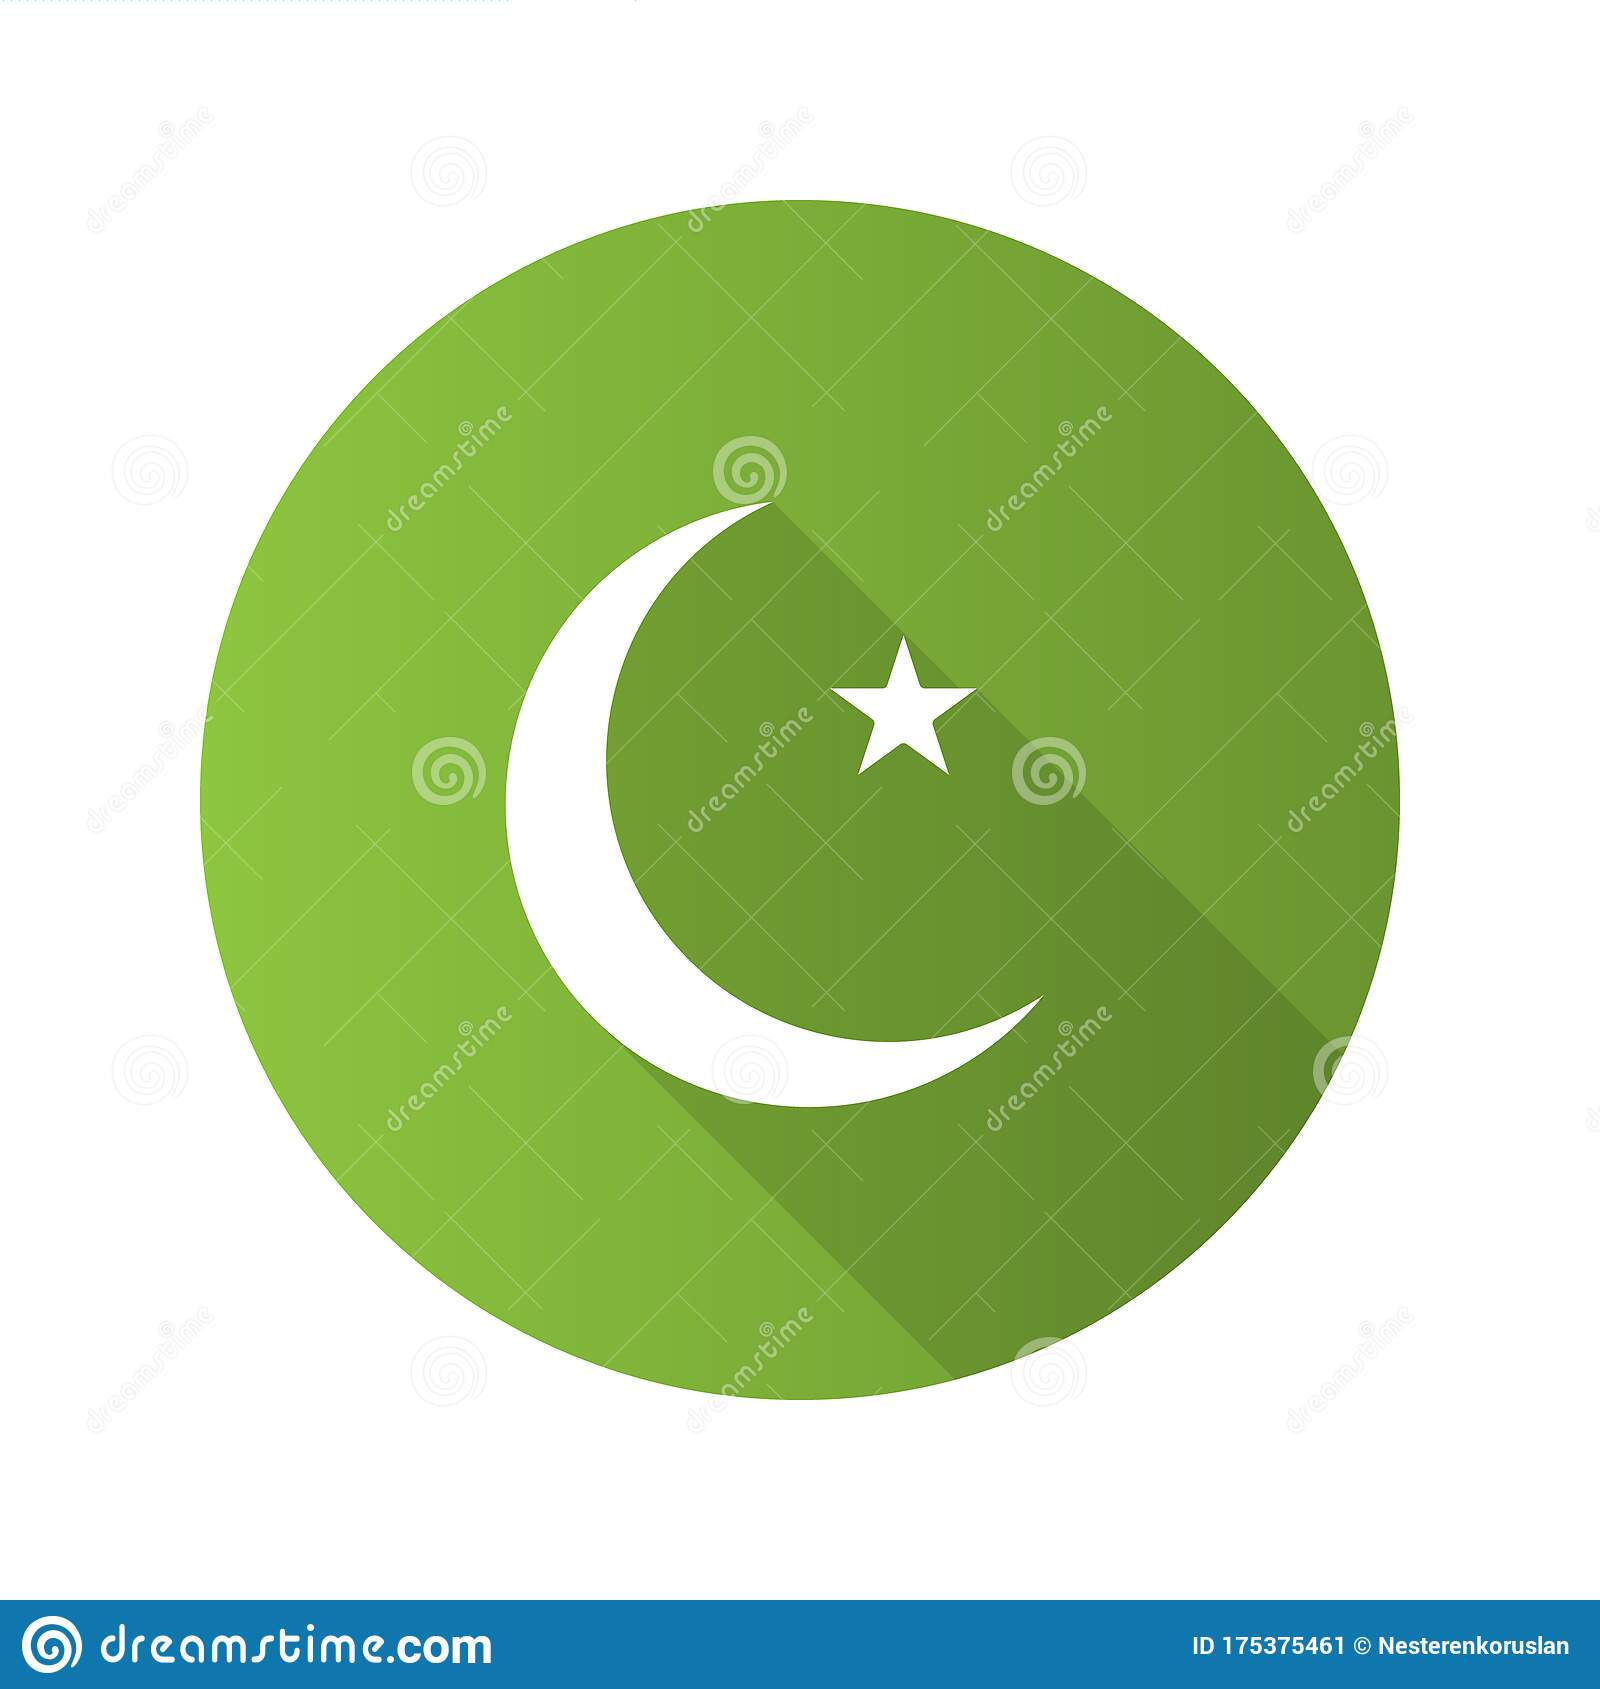 star and crescent moon flat design long shadow glyph icon stock vector illustration of religious ethnic 175375461 star and crescent moon flat design long shadow glyph icon stock vector illustration of religious ethnic 175375461